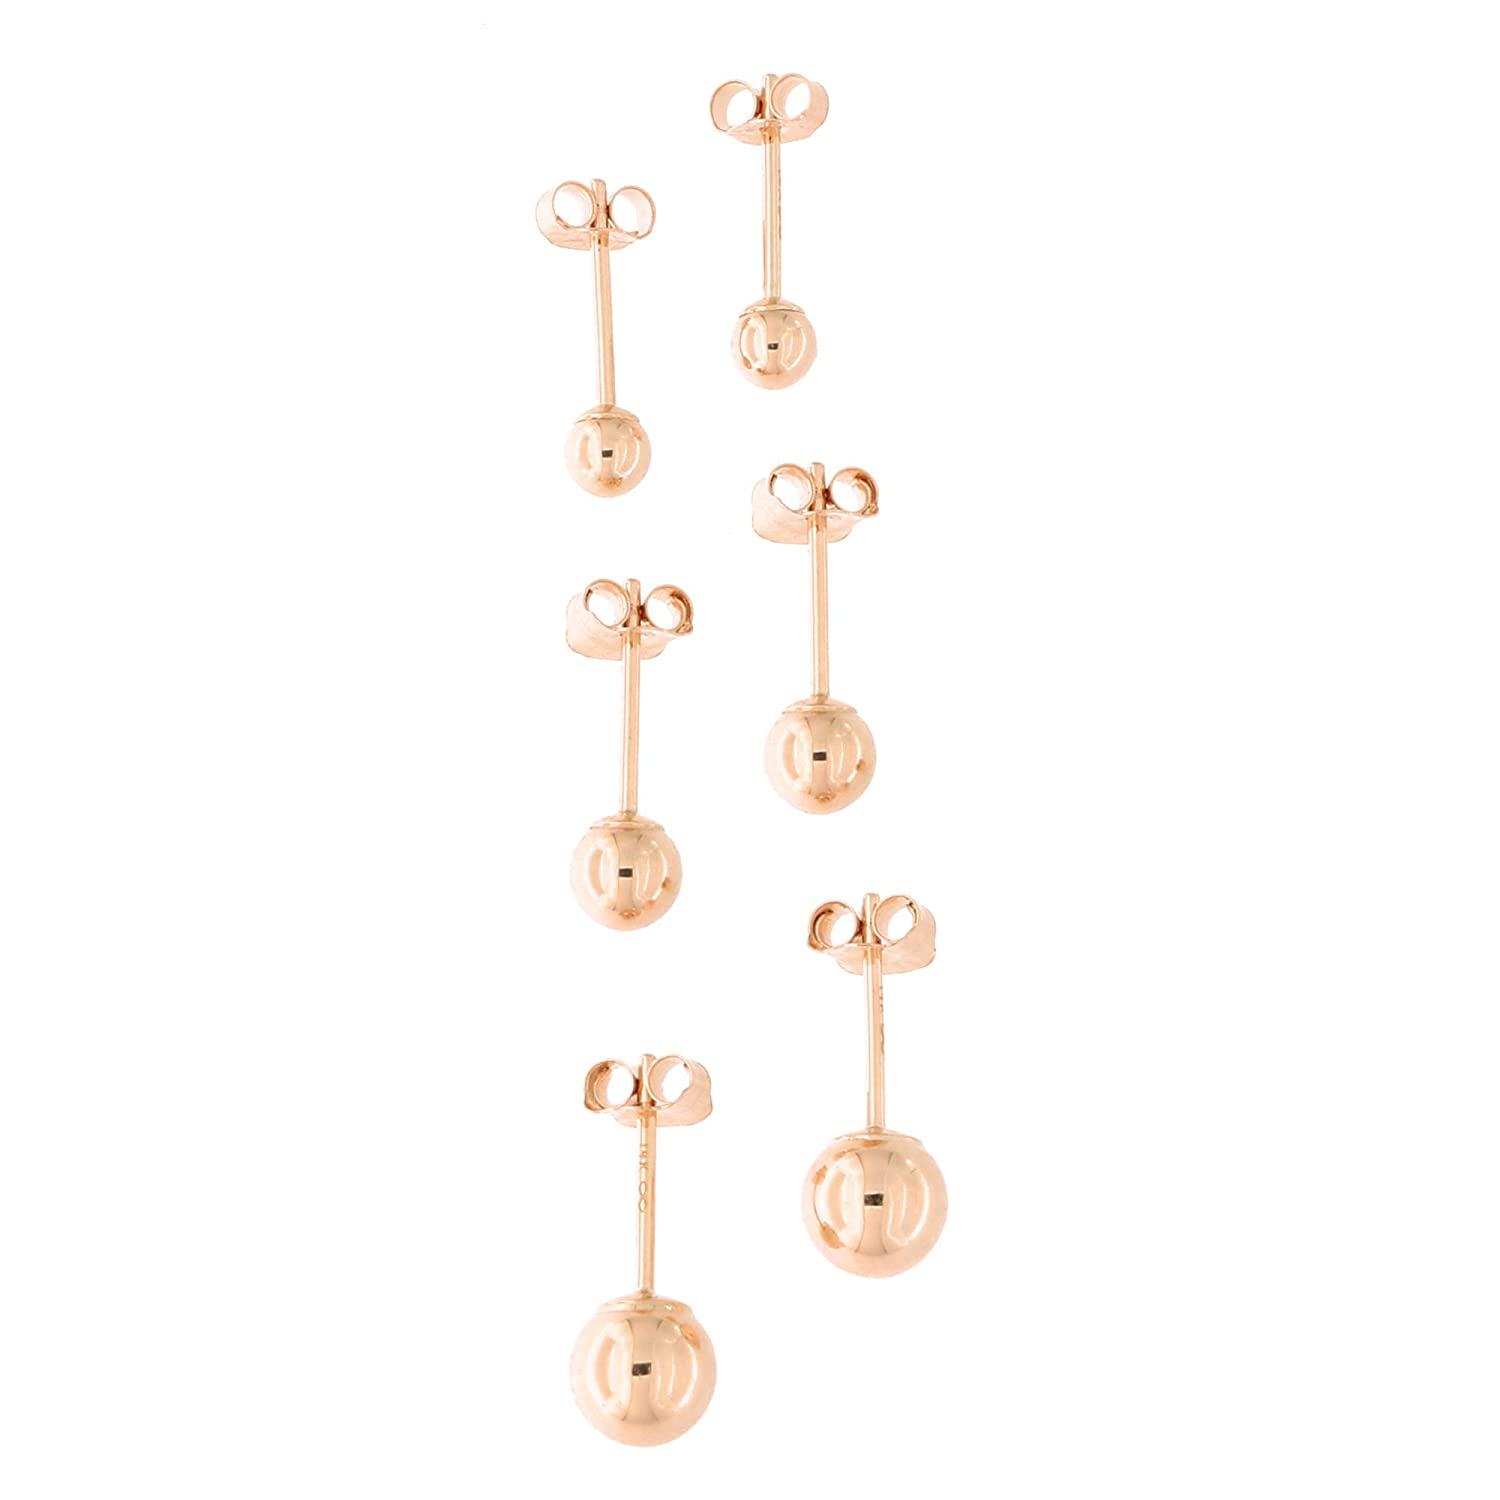 14k Yellow White or Rose Gold 3mm 4mm and 5mm Ball Stud Earrings Set beauniq-385